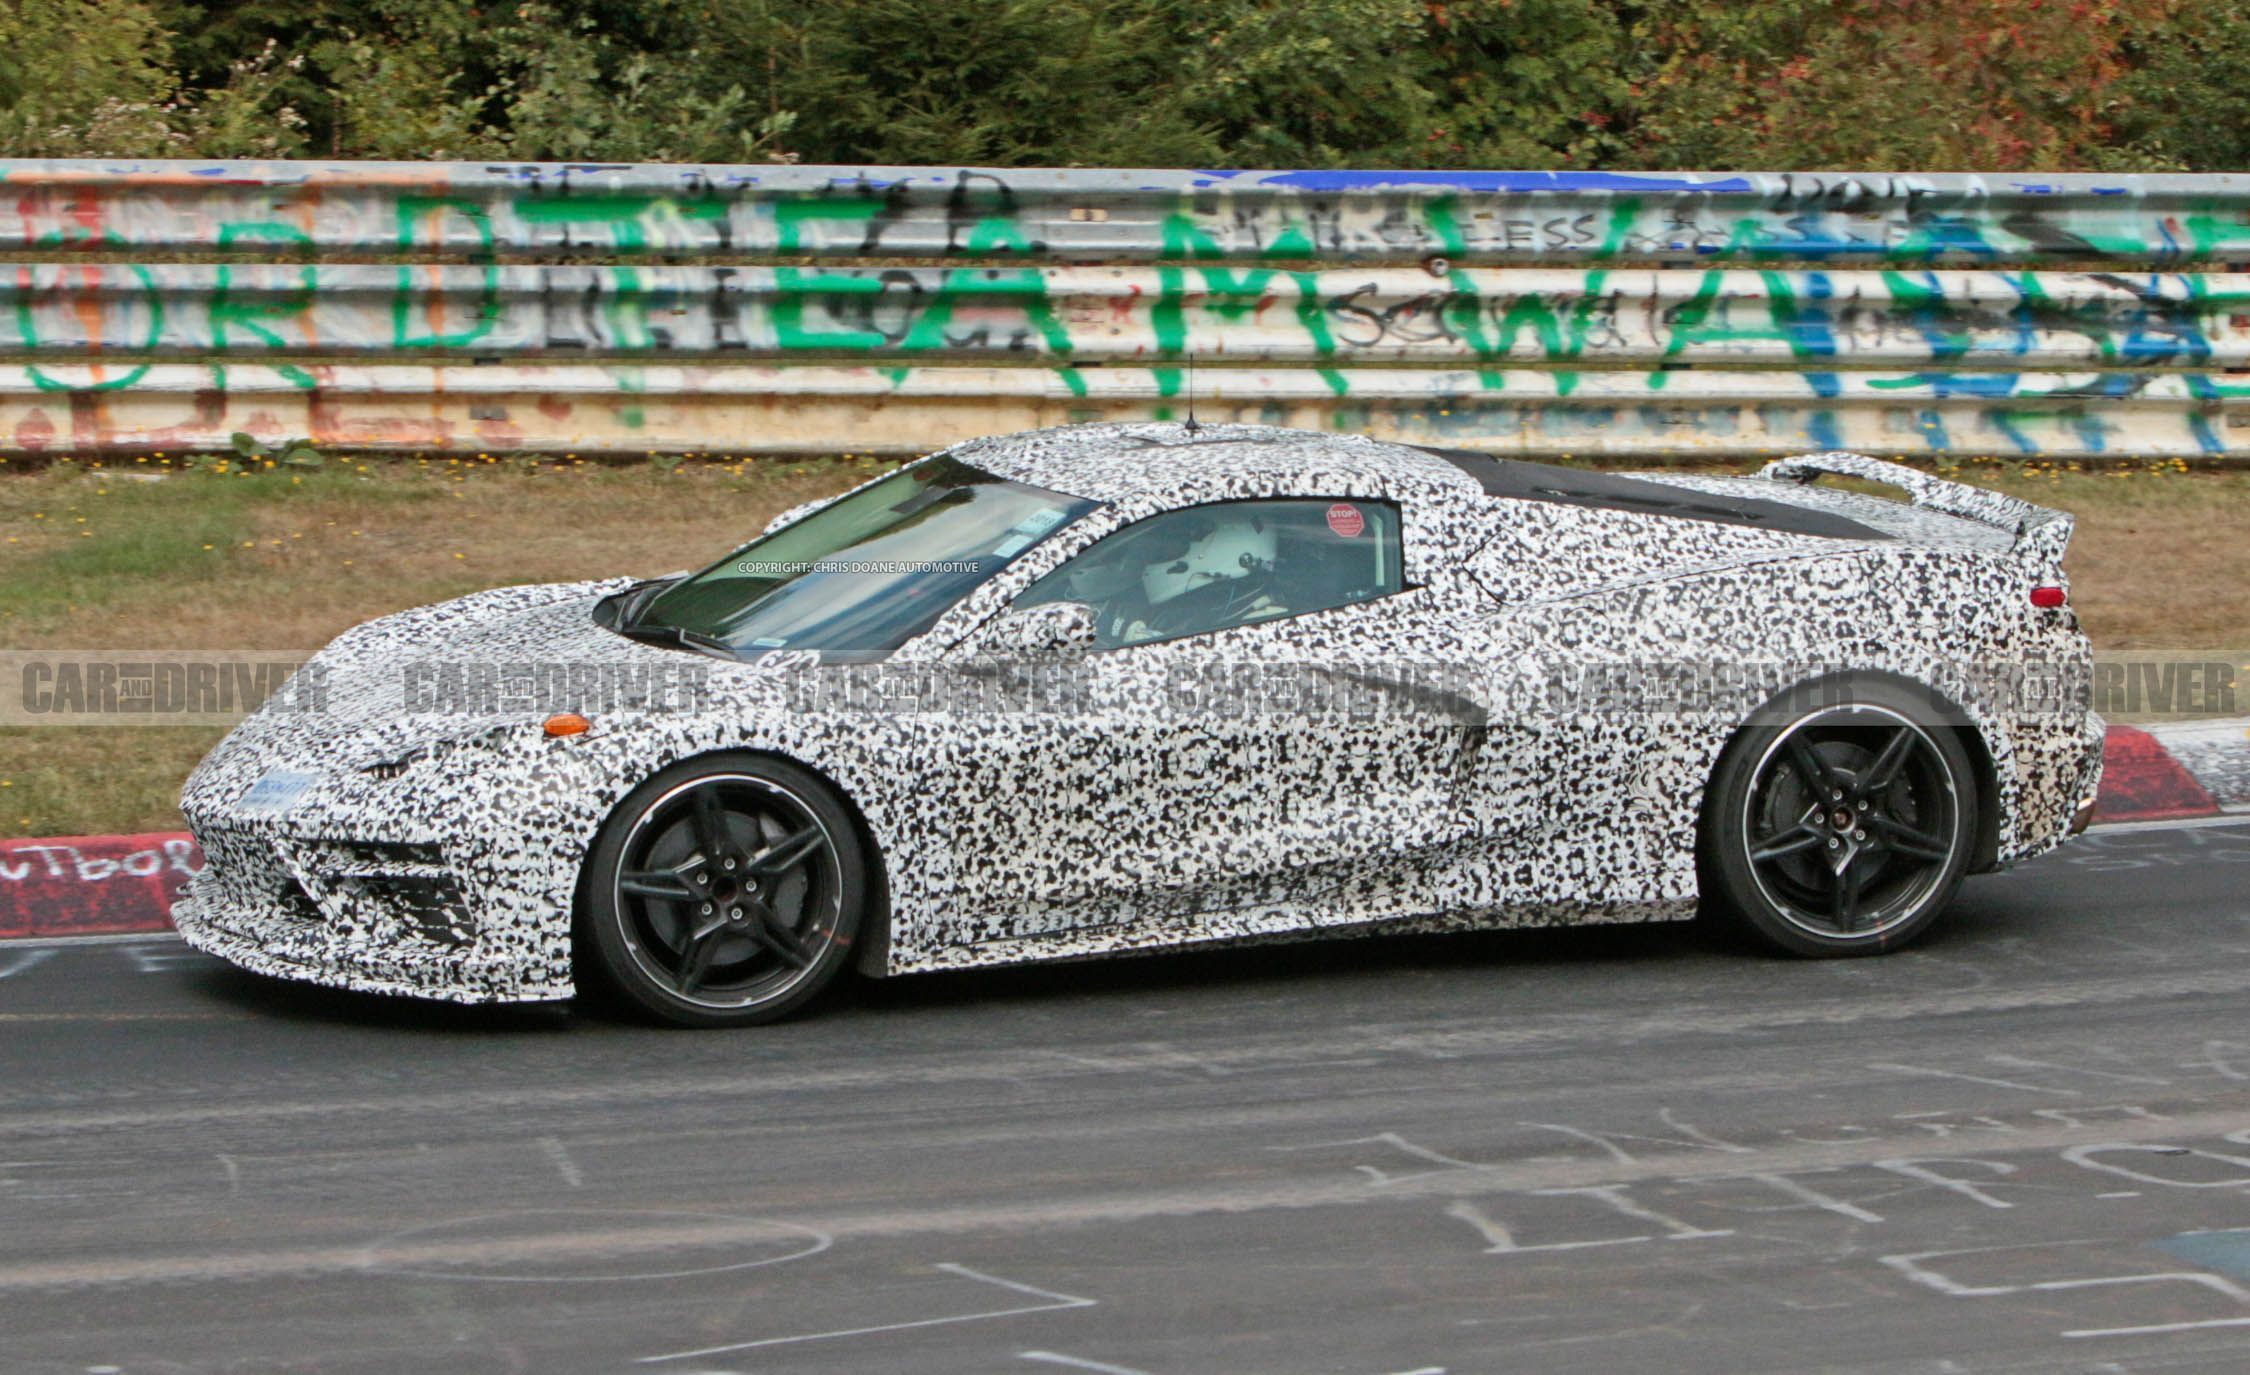 2020 Chevrolet Corvette C8 Fresh Spy Shots Reveal New Details Video